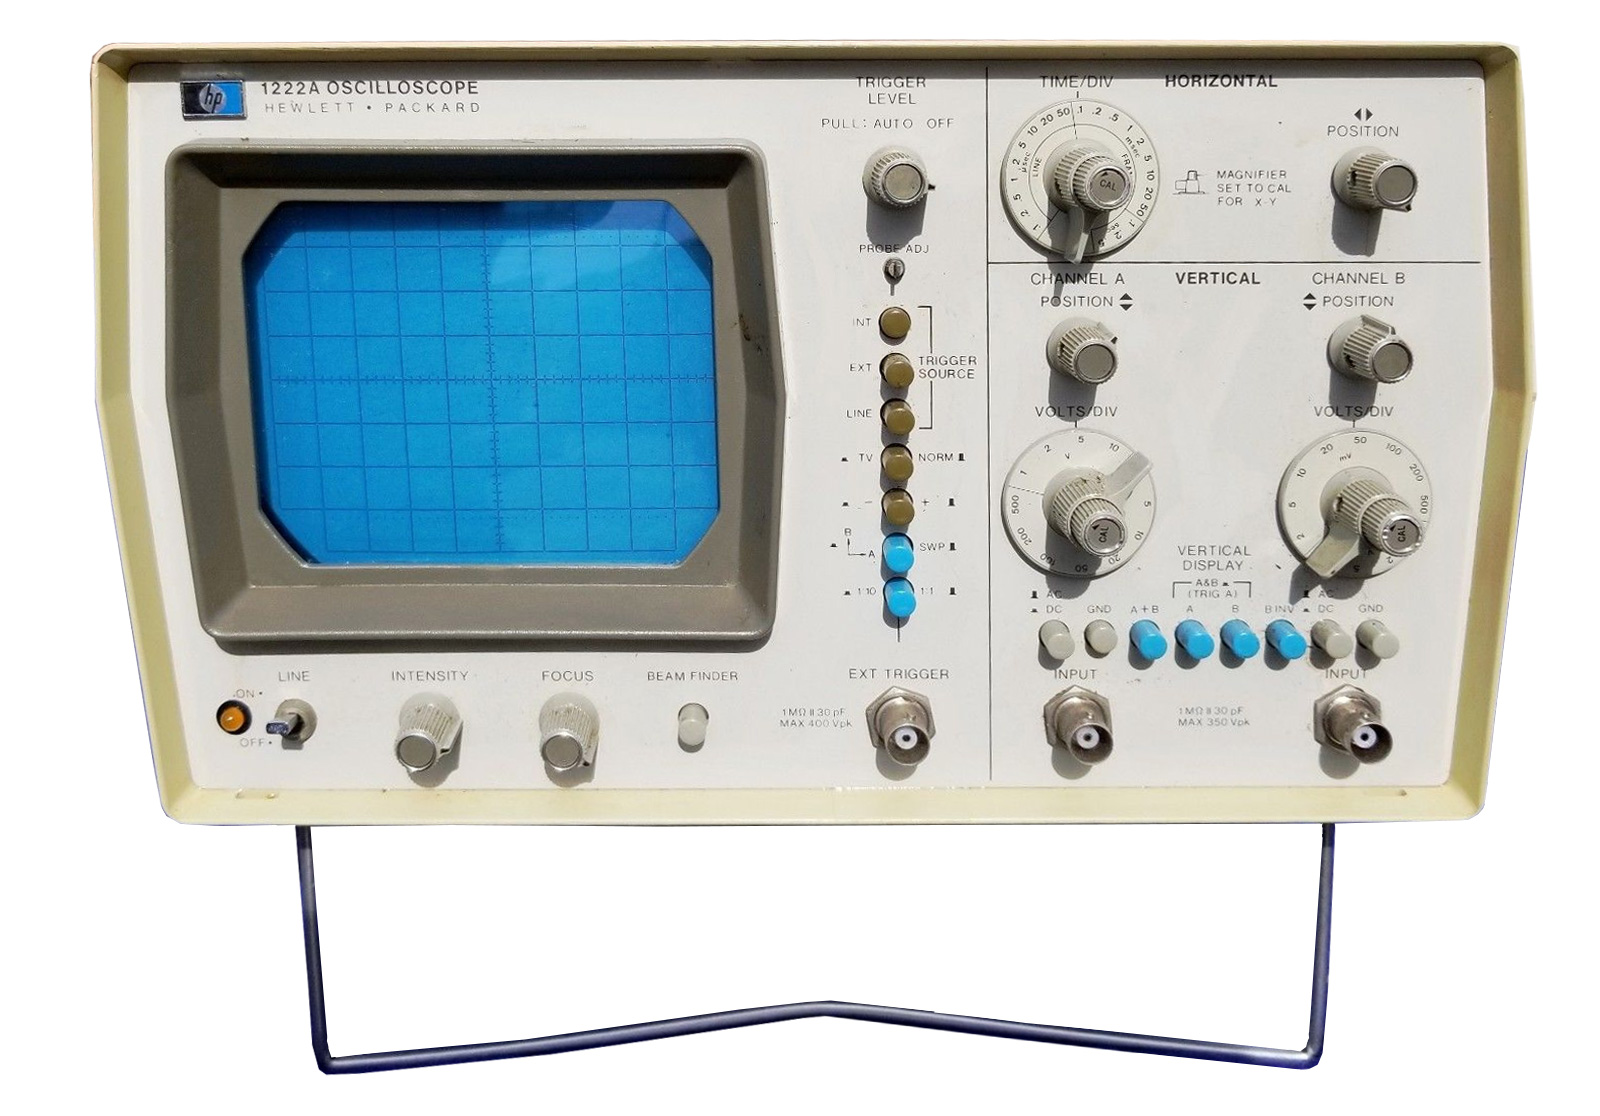 Keysight 1222A Dual Channel Oscilloscope